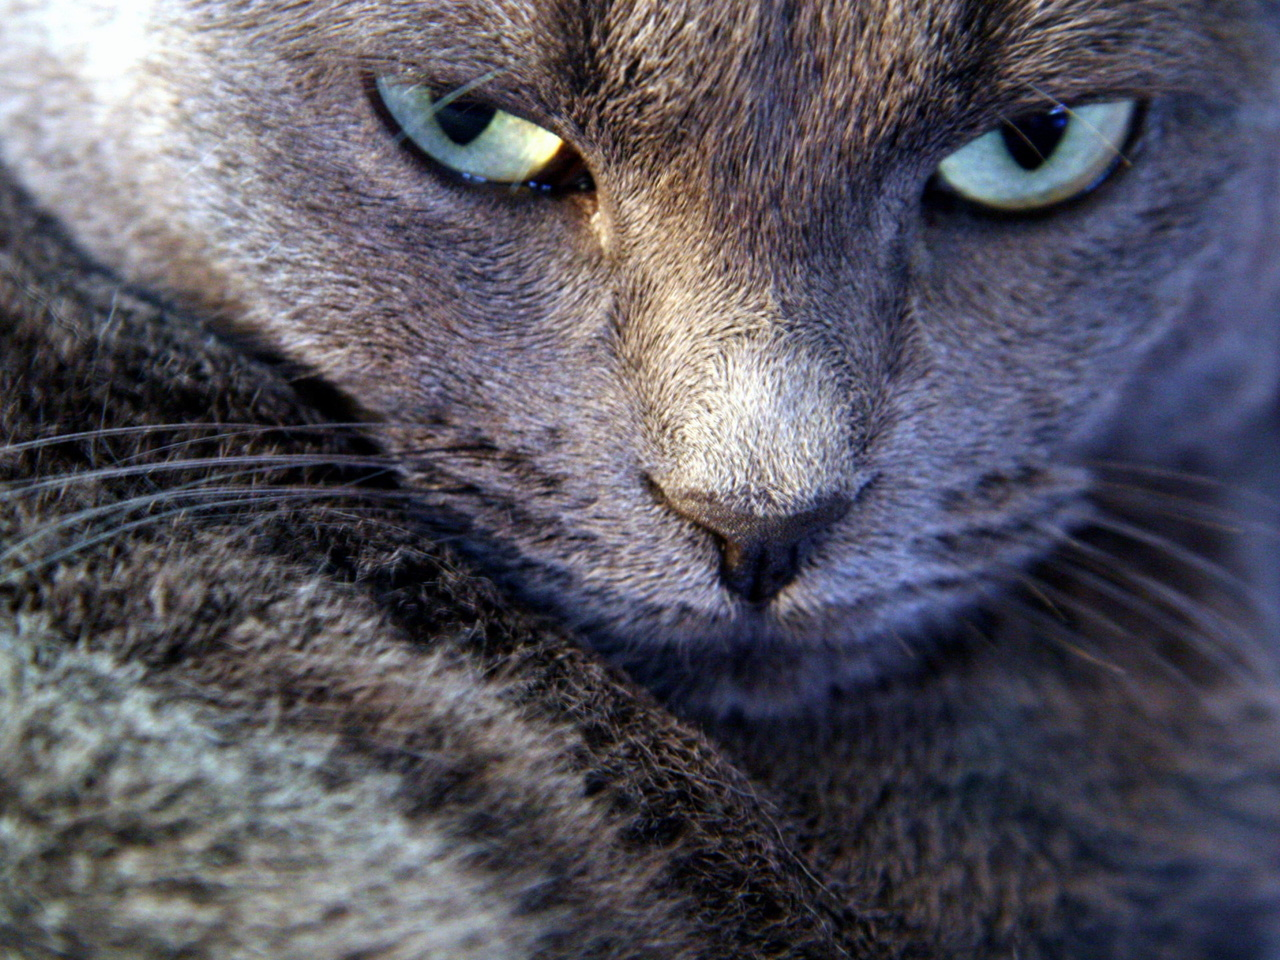 Gray cat with a haughty glance